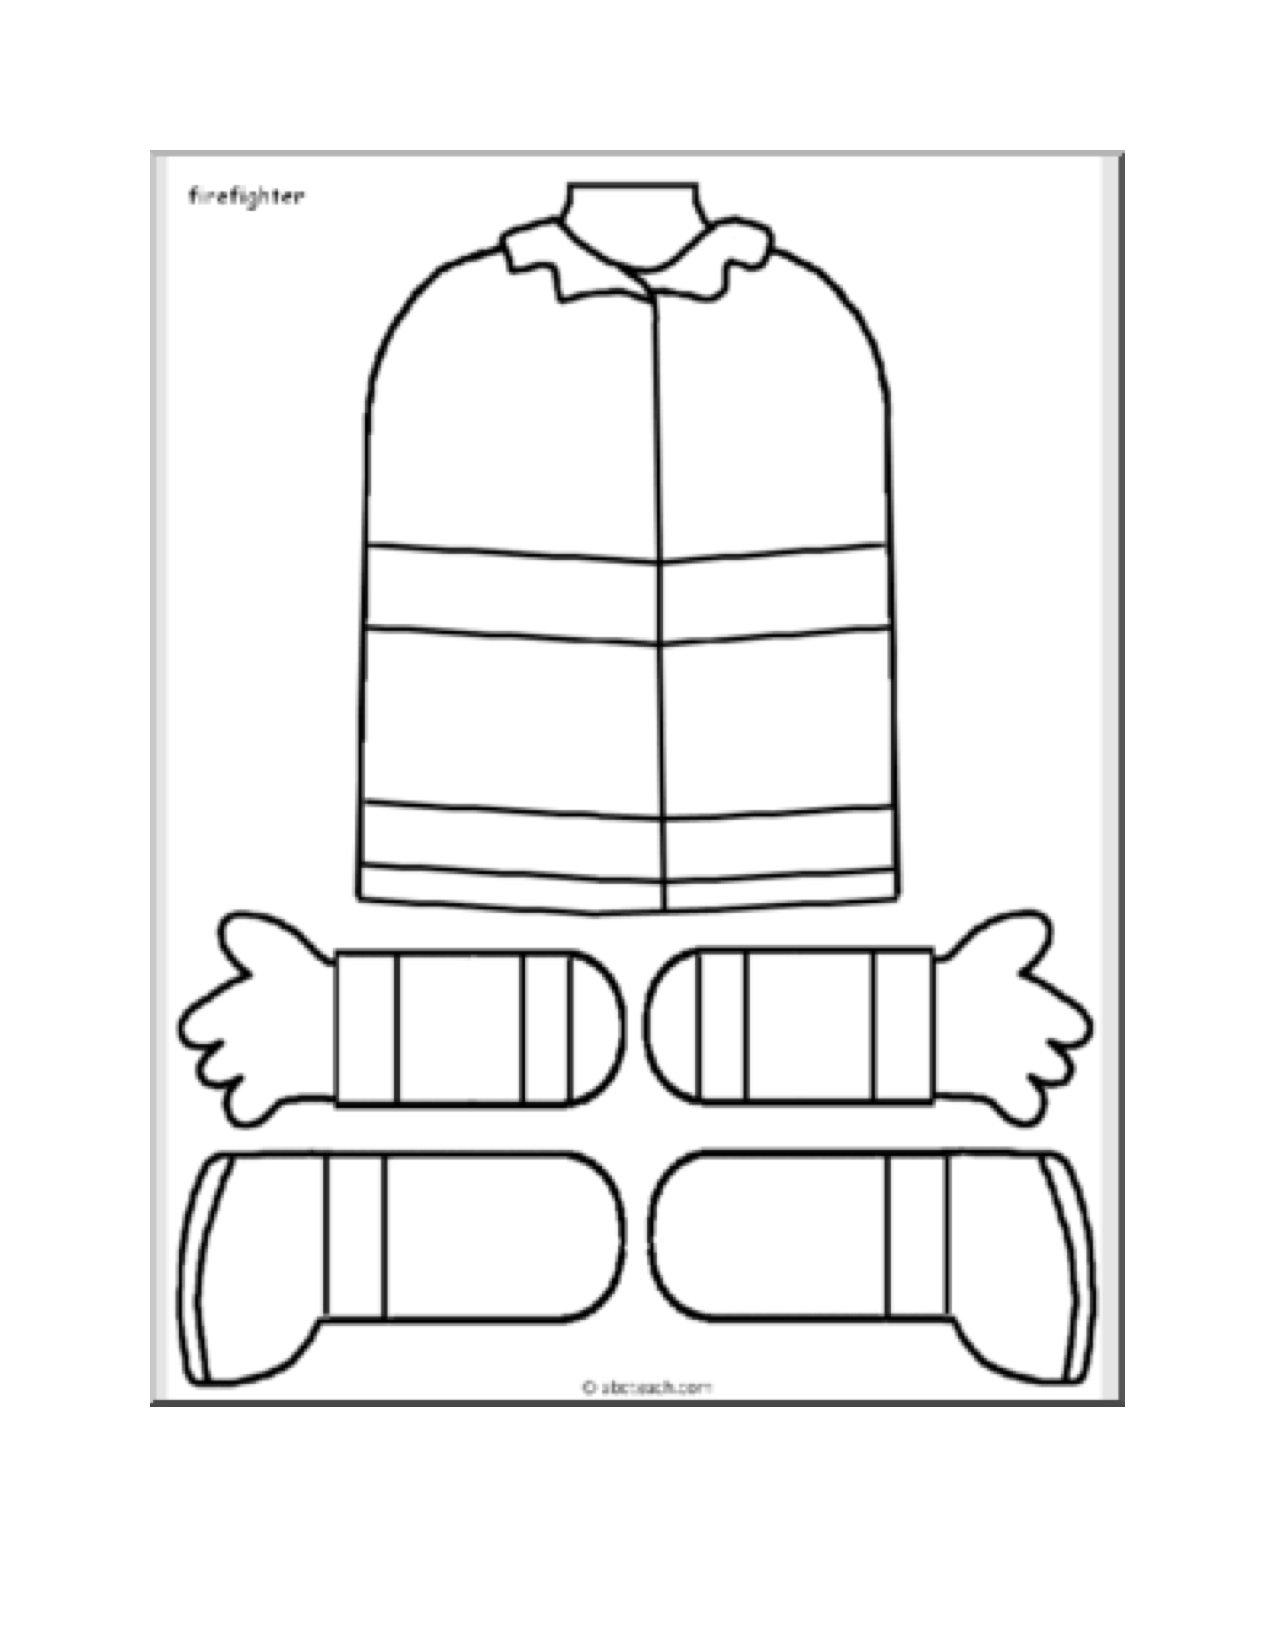 person template preschool - fire safety kindergarten nana